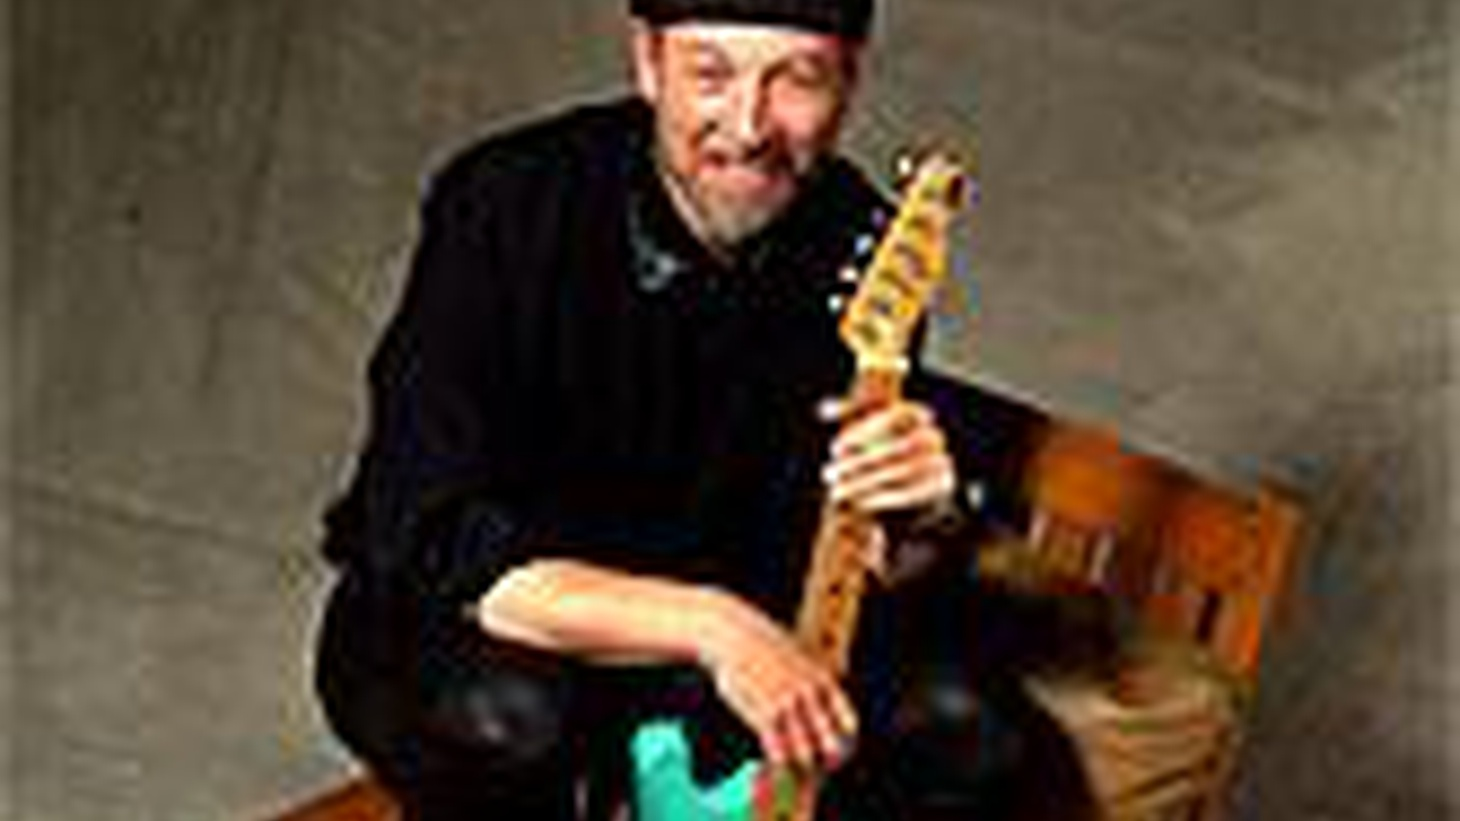 Legendary British songwriter and guitarist Richard Thompson will be Gary Calamar's guest DJ this Sunday May 20 at 11 pm.